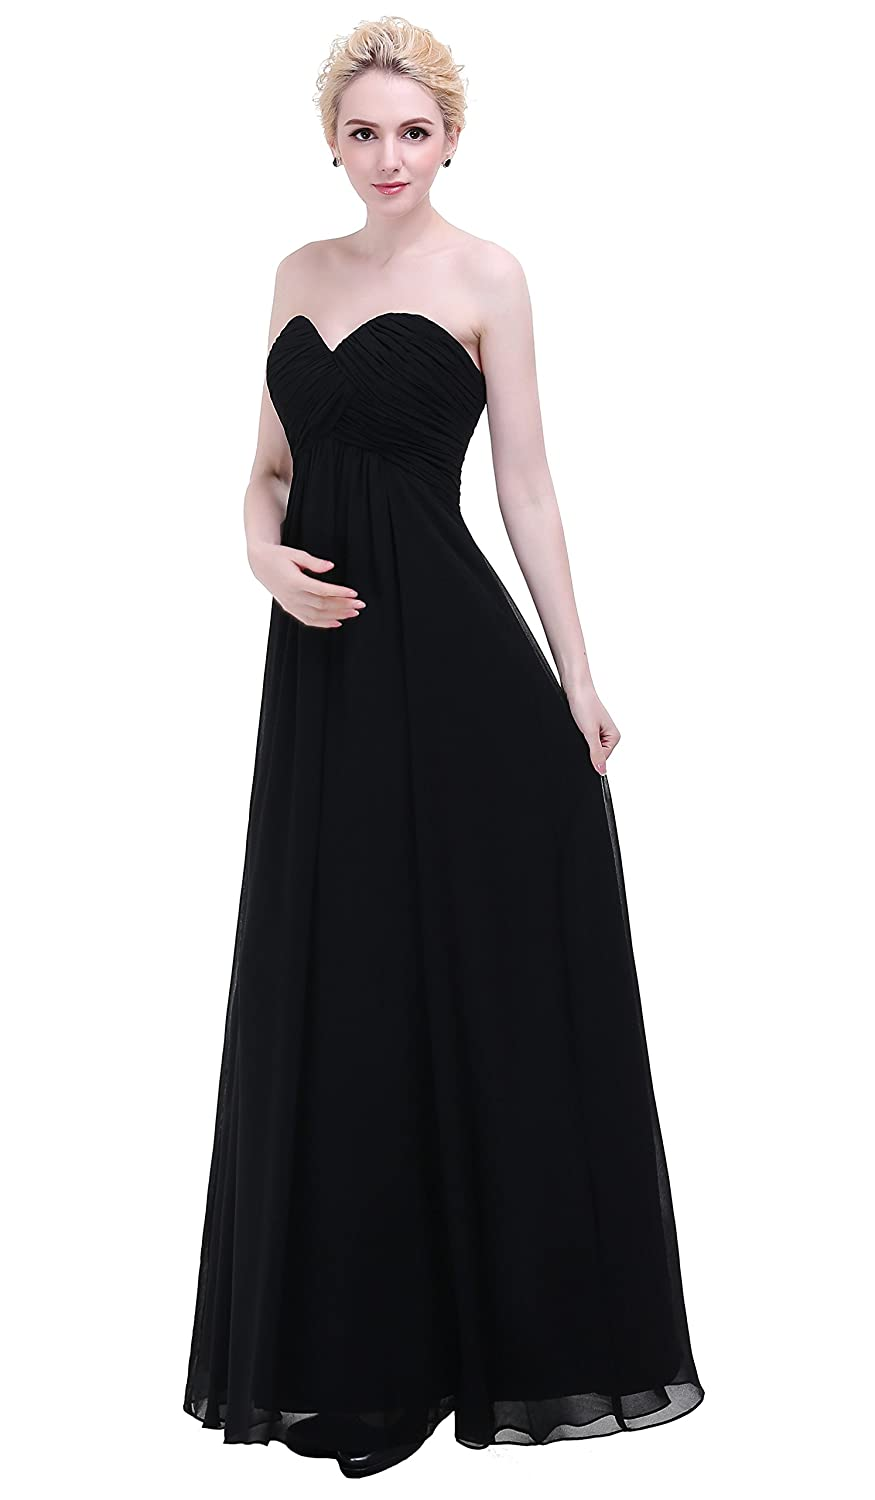 Esvor sweetheart chiffon party prom bridesmaid dress long evening esvor sweetheart chiffon party prom bridesmaid dress long evening gown at amazon womens clothing store ombrellifo Choice Image